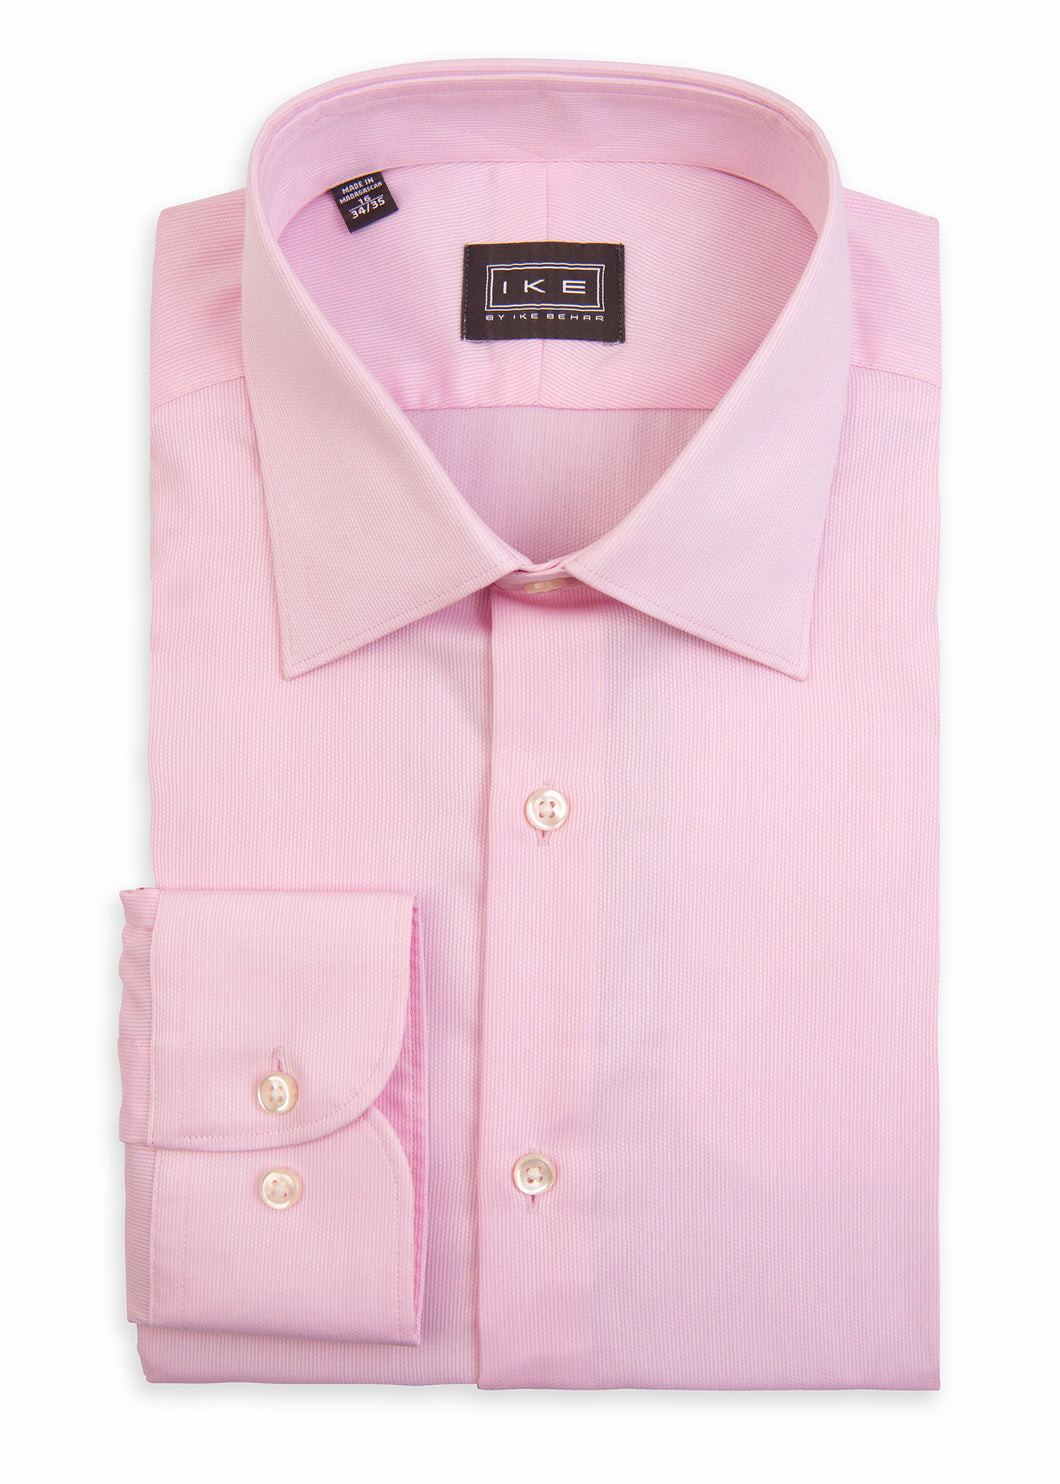 Pink Pique Ike by Ike Behar Dress Shirt